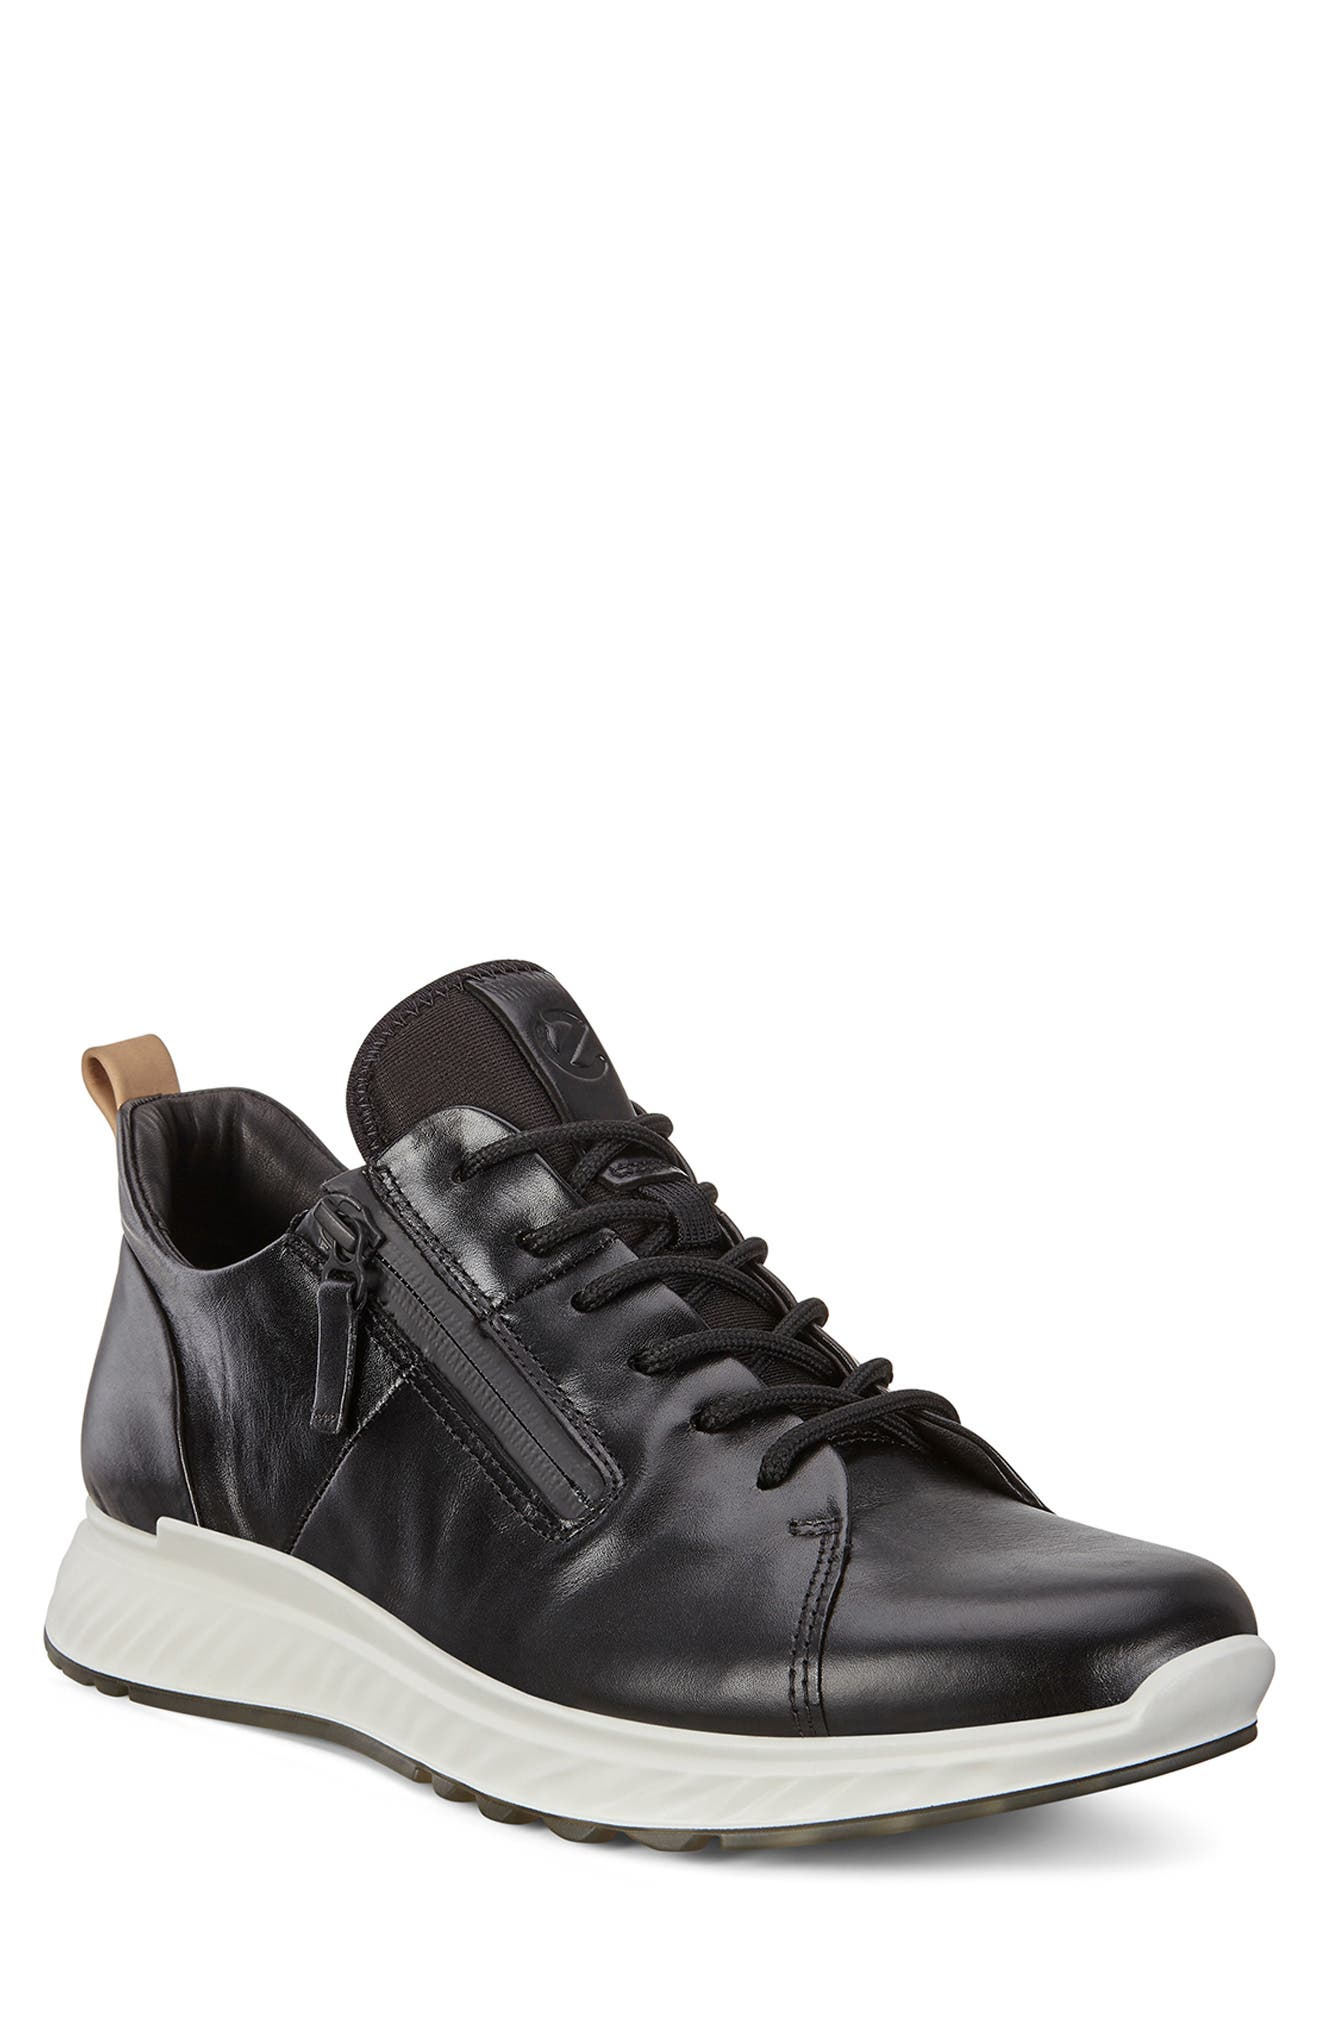 ST1 Zipper Sneaker,                             Main thumbnail 1, color,                             BLACK LEATHER